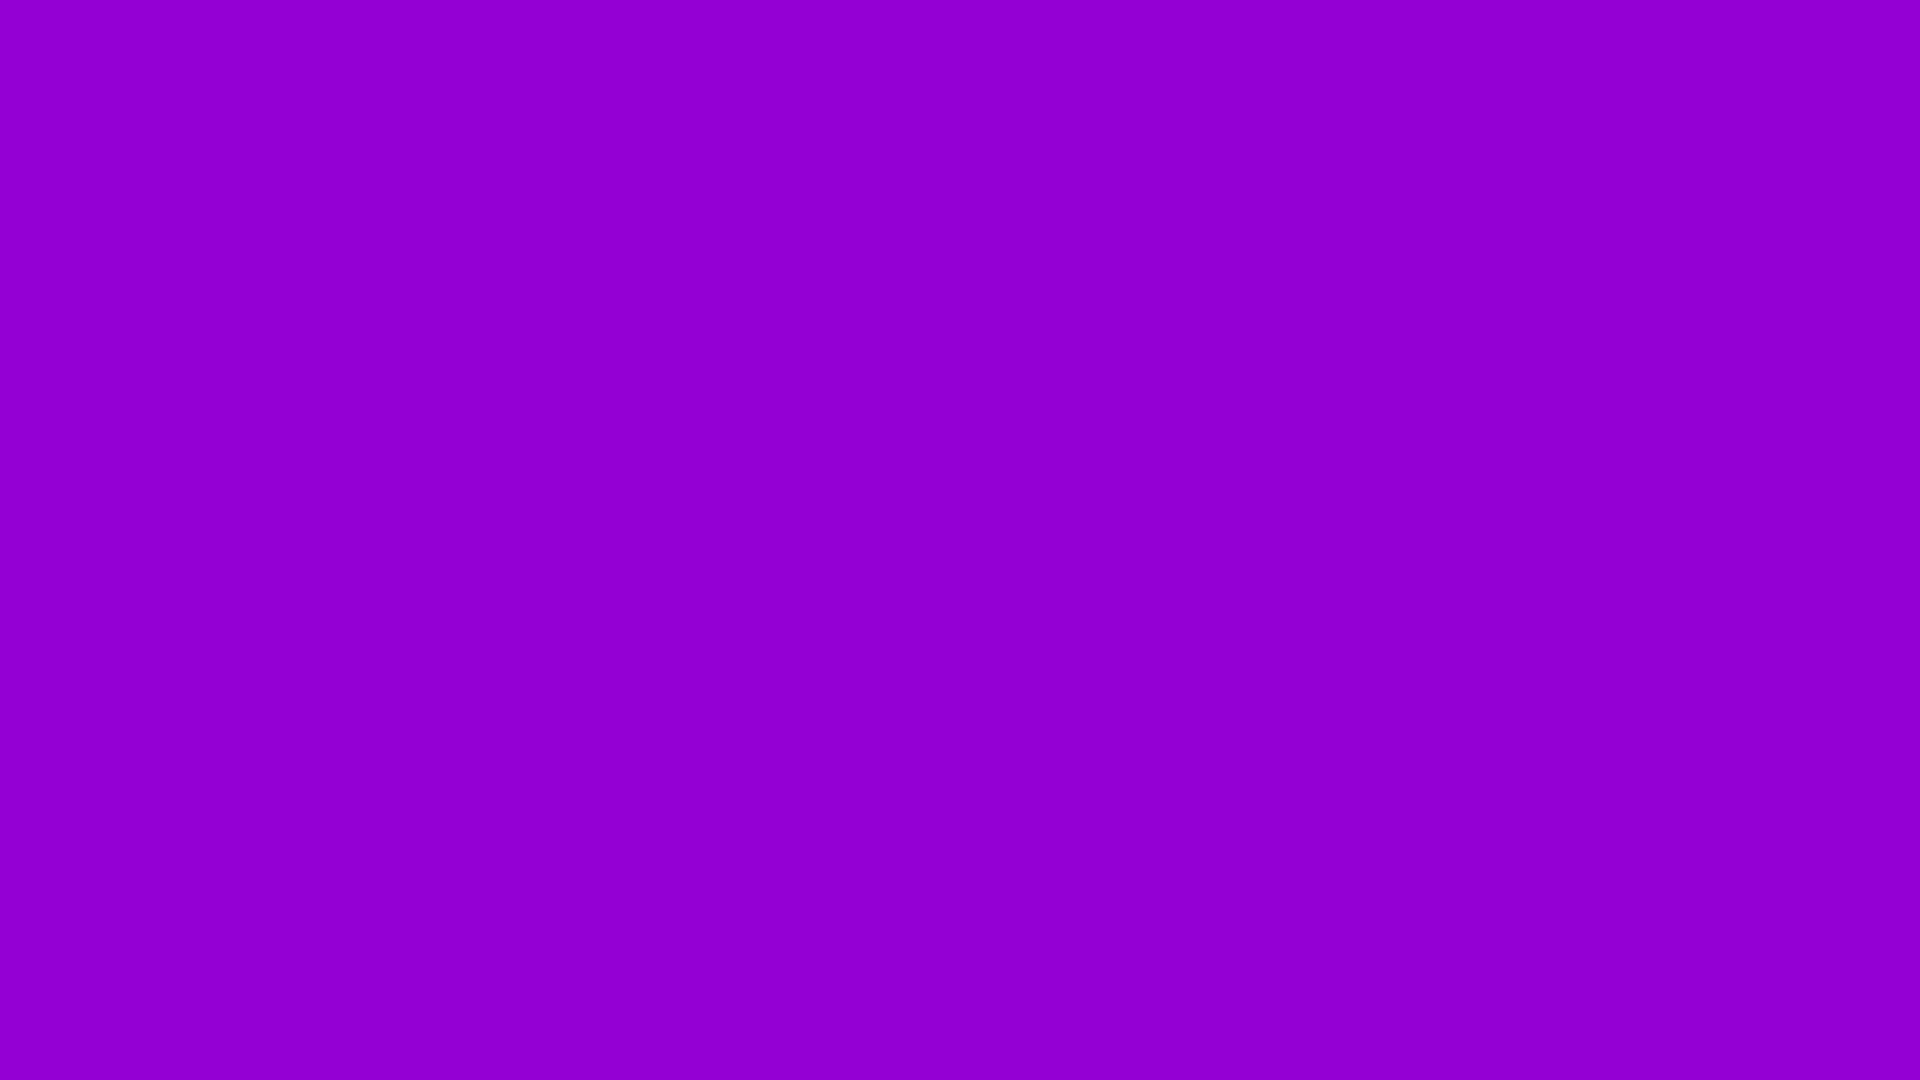 1920x1080 Dark Violet Solid Color Background